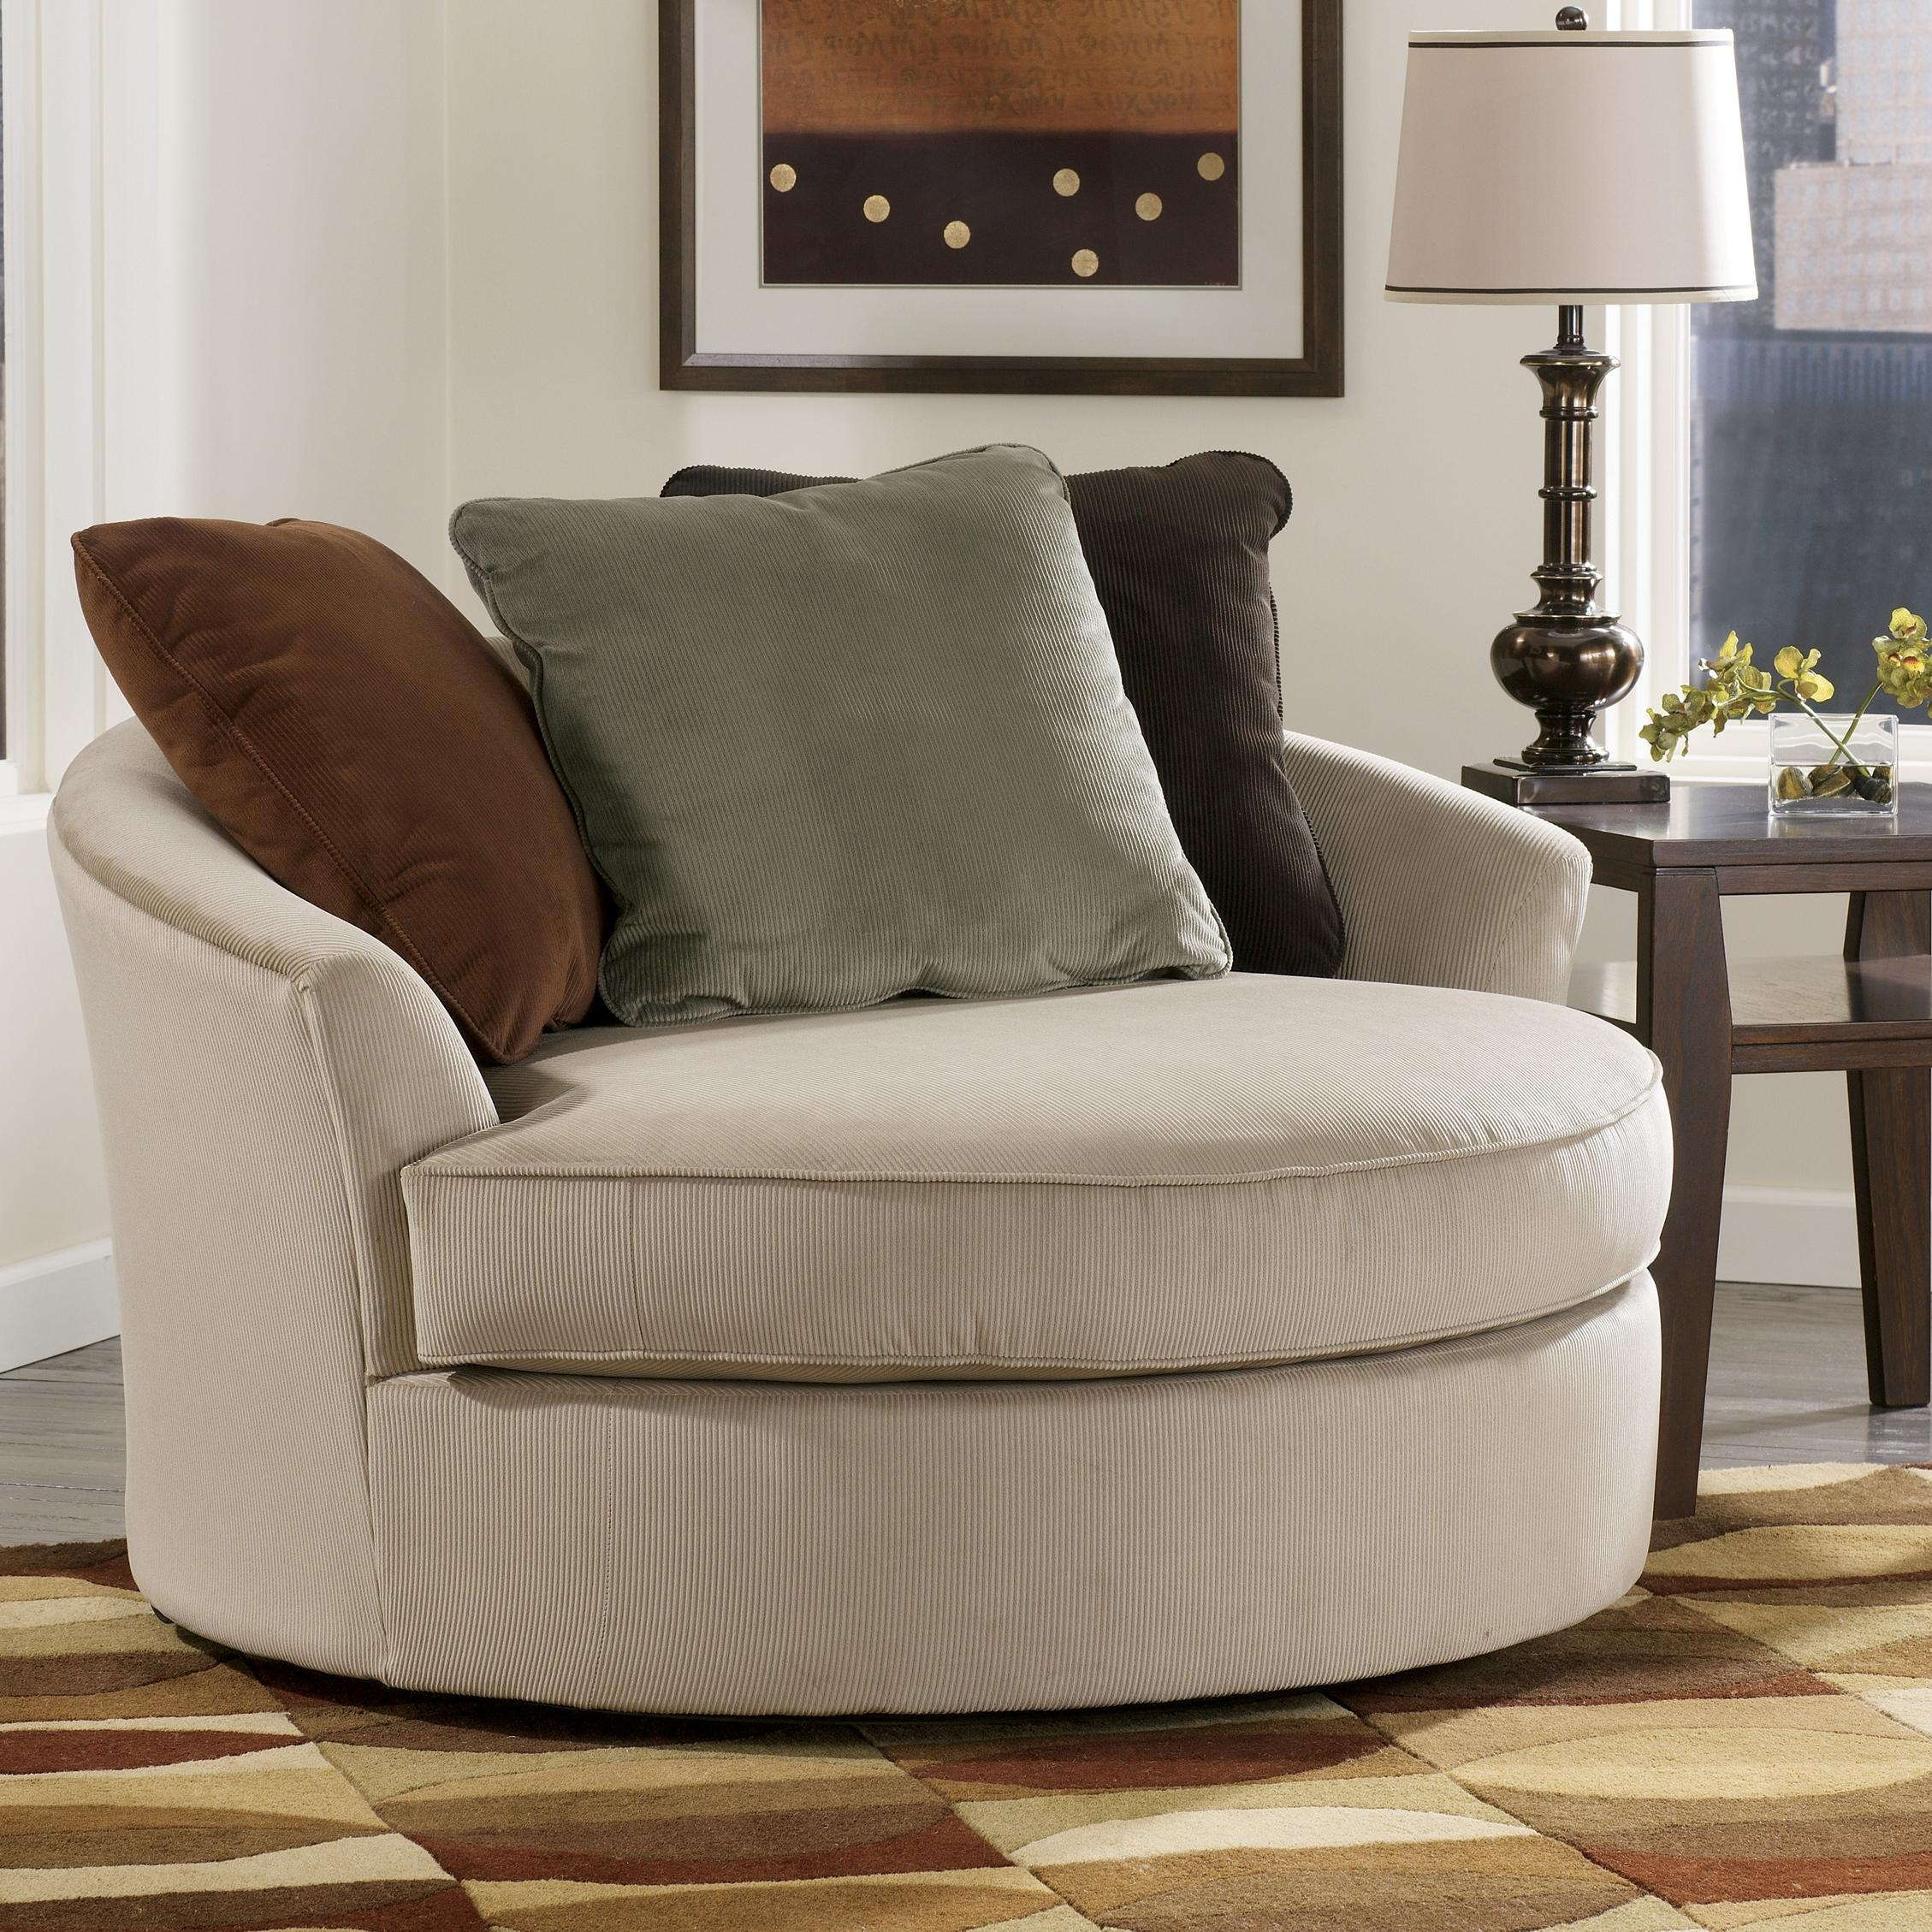 Laken Oversized Round Swivel Chair Signature Design Ashley In Oversized Sofa Chairs (Image 5 of 15)